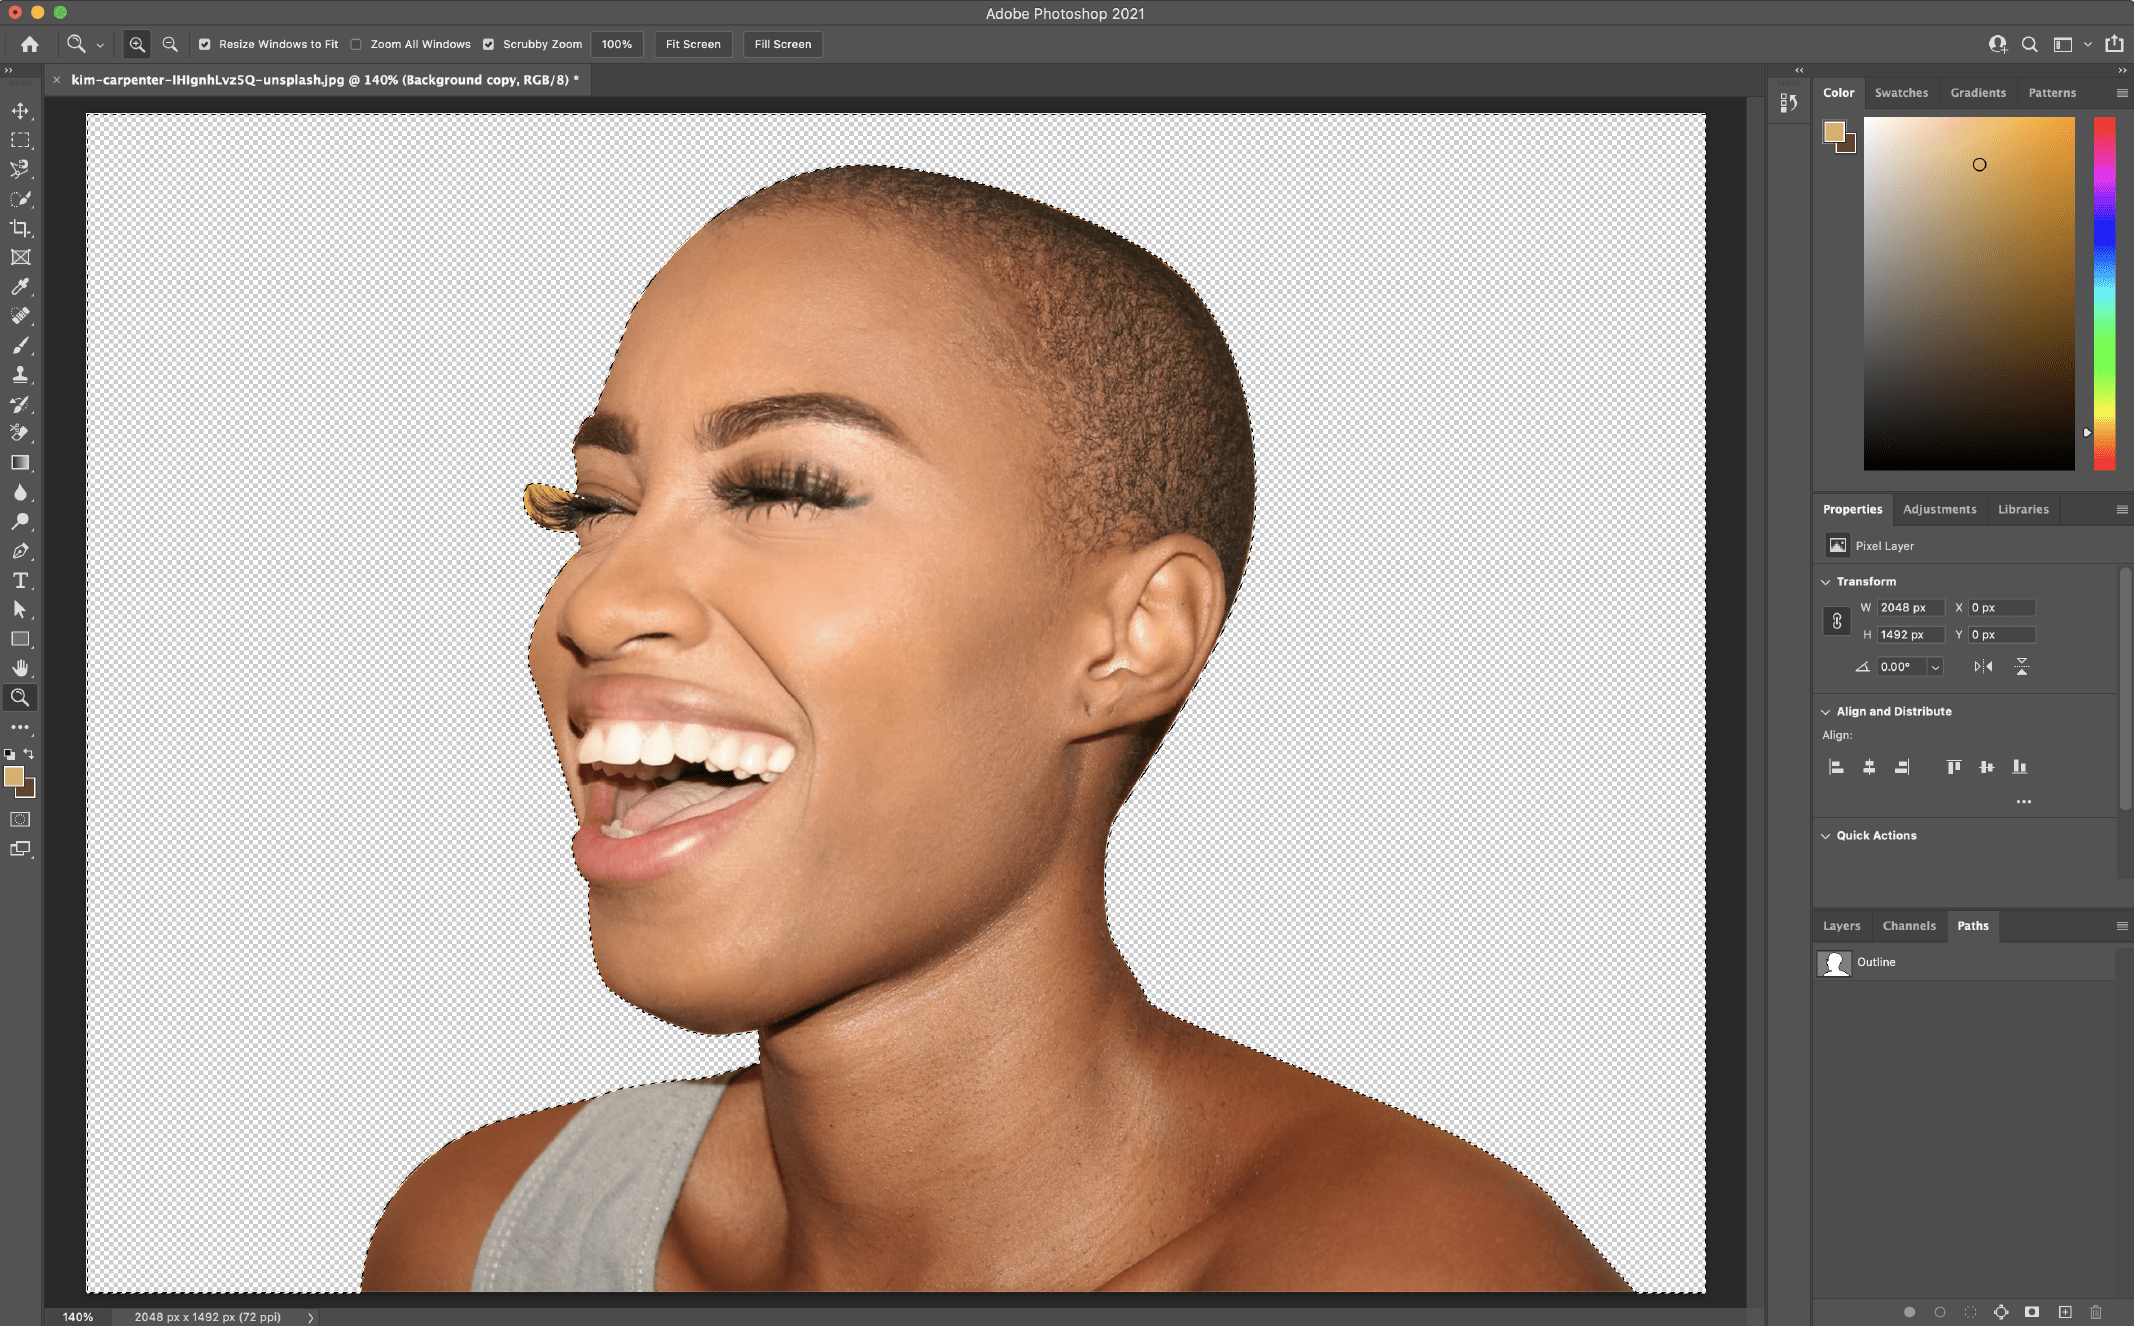 Remove Background in Photoshop using the Pen Tool 4